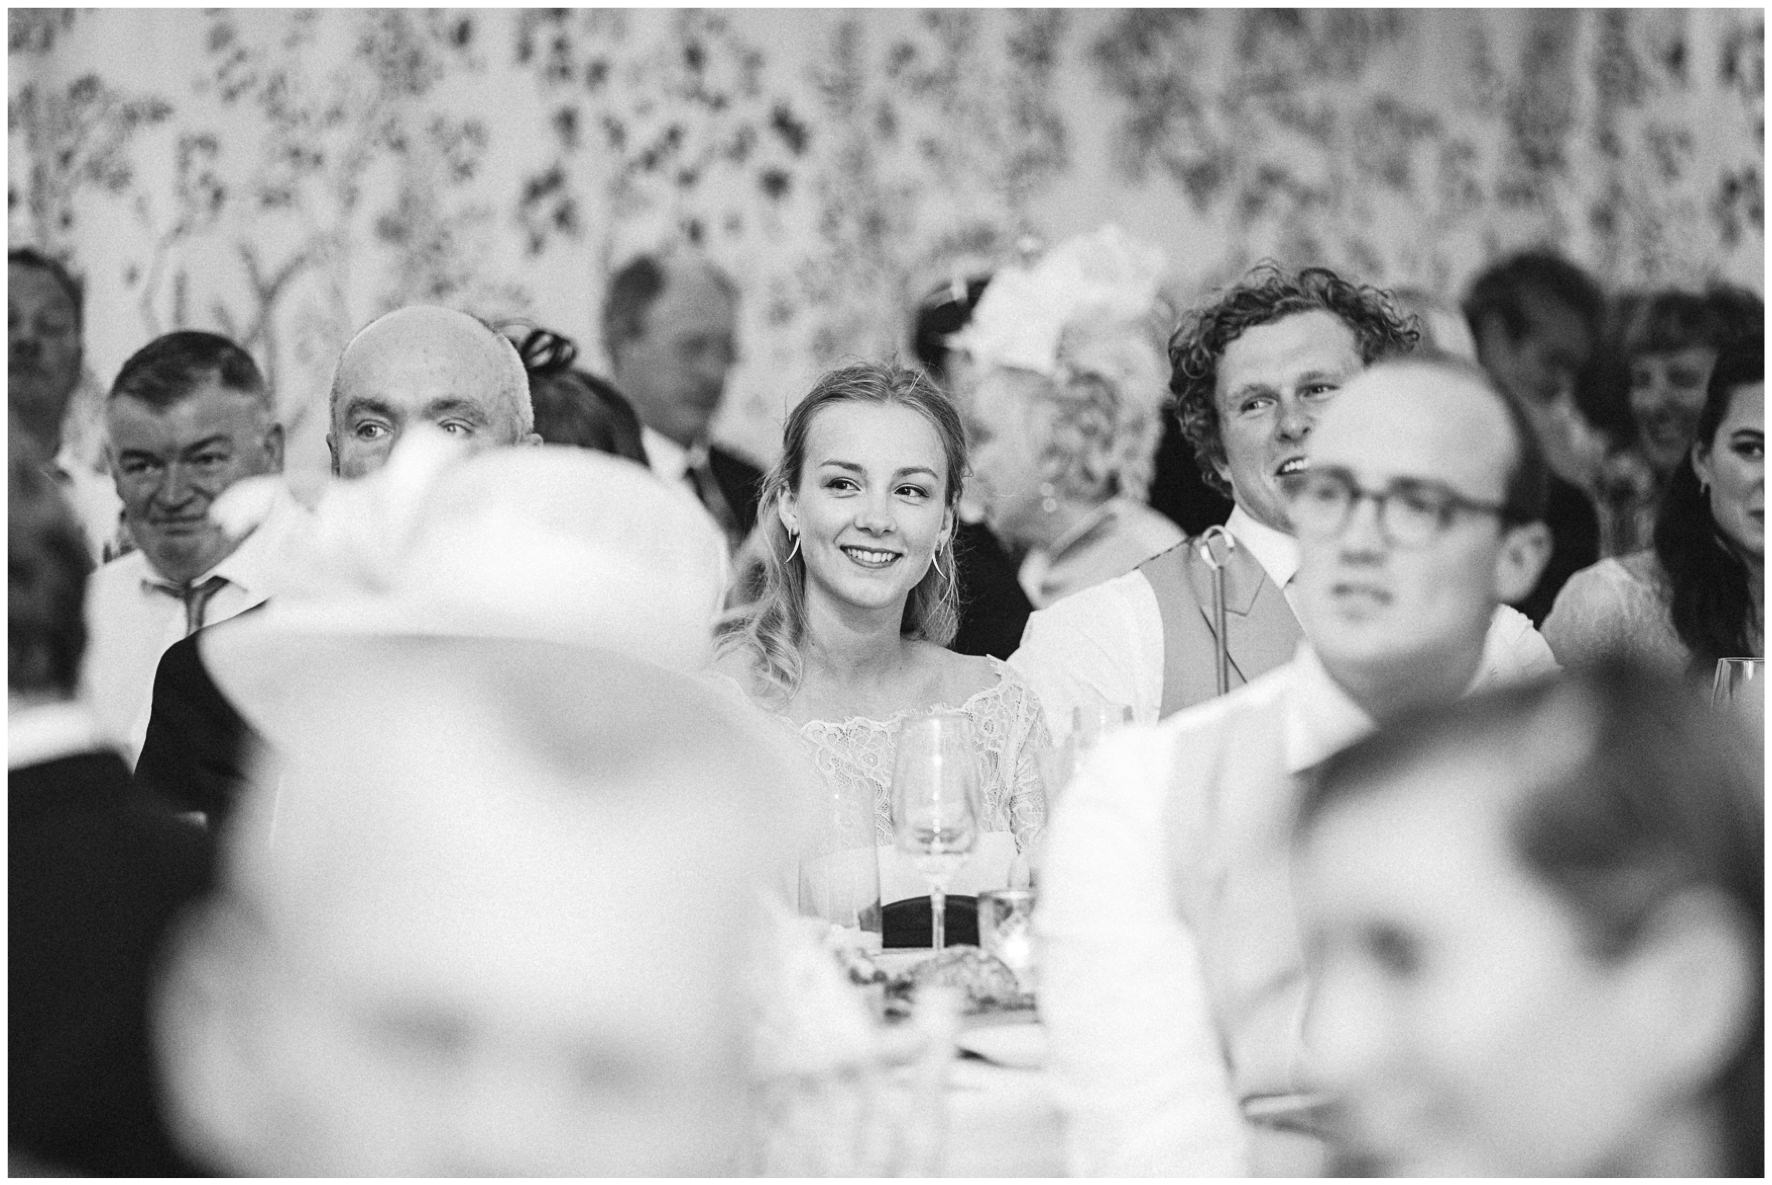 Lucy Davenport Photography, Cornwell Manor, wedding venue, Oxfordshire, Cotswold wedding, marquee wedding, marquee, wedding breakfast, speeches